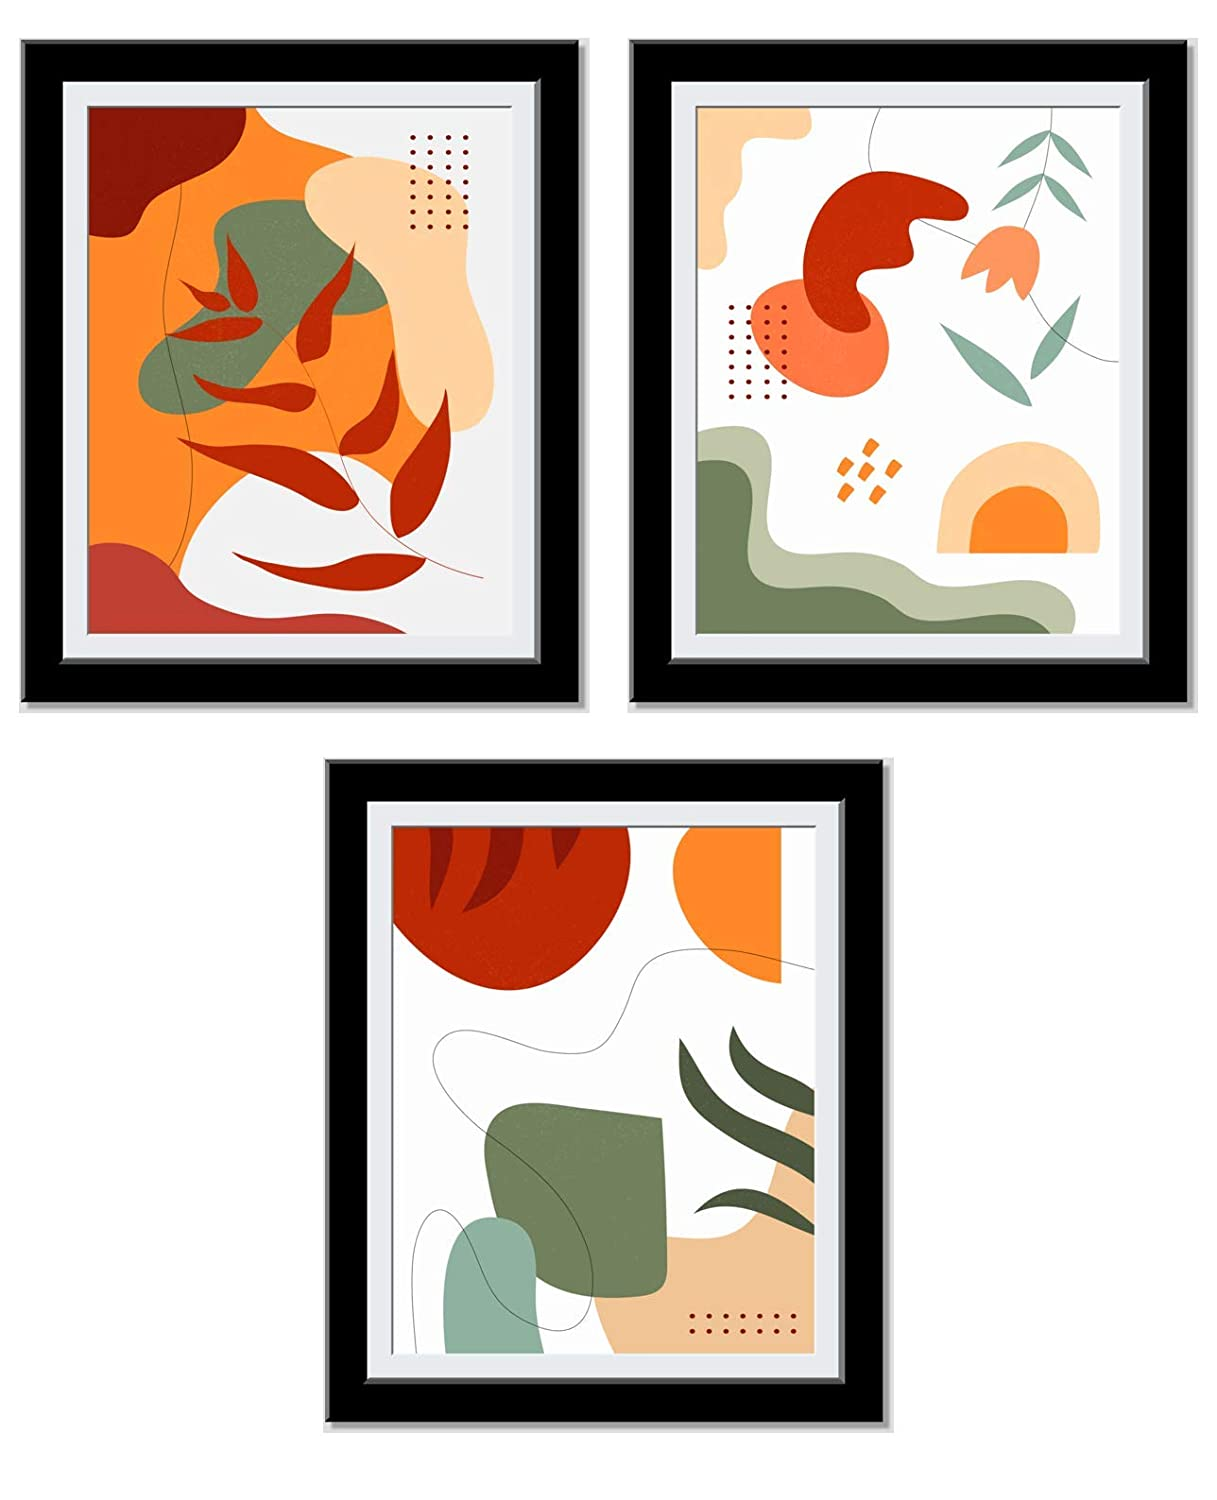 Bedroom Decor - Vibrant Orange Posters For Room Aesthetic - Abstract Art - Chic Minimalist Decor - Cute, Trendy Art Prints - House warming, Anniversary Gifts For Her - 8X10 Unframed…